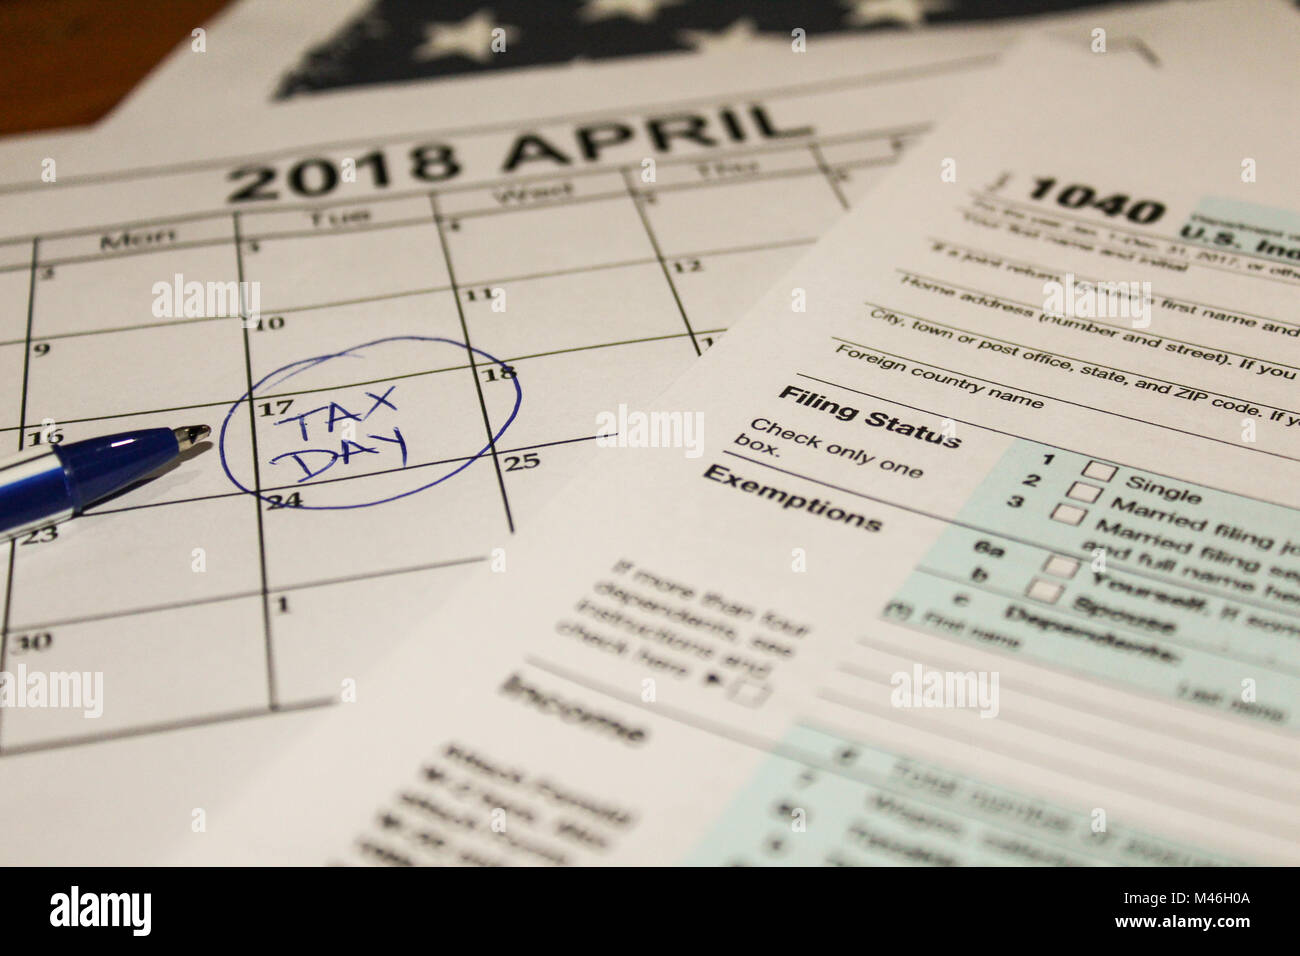 Calendar and form 1040 income tax form for 2017 showing tax day for filing is April 17 2018 Stock Photo